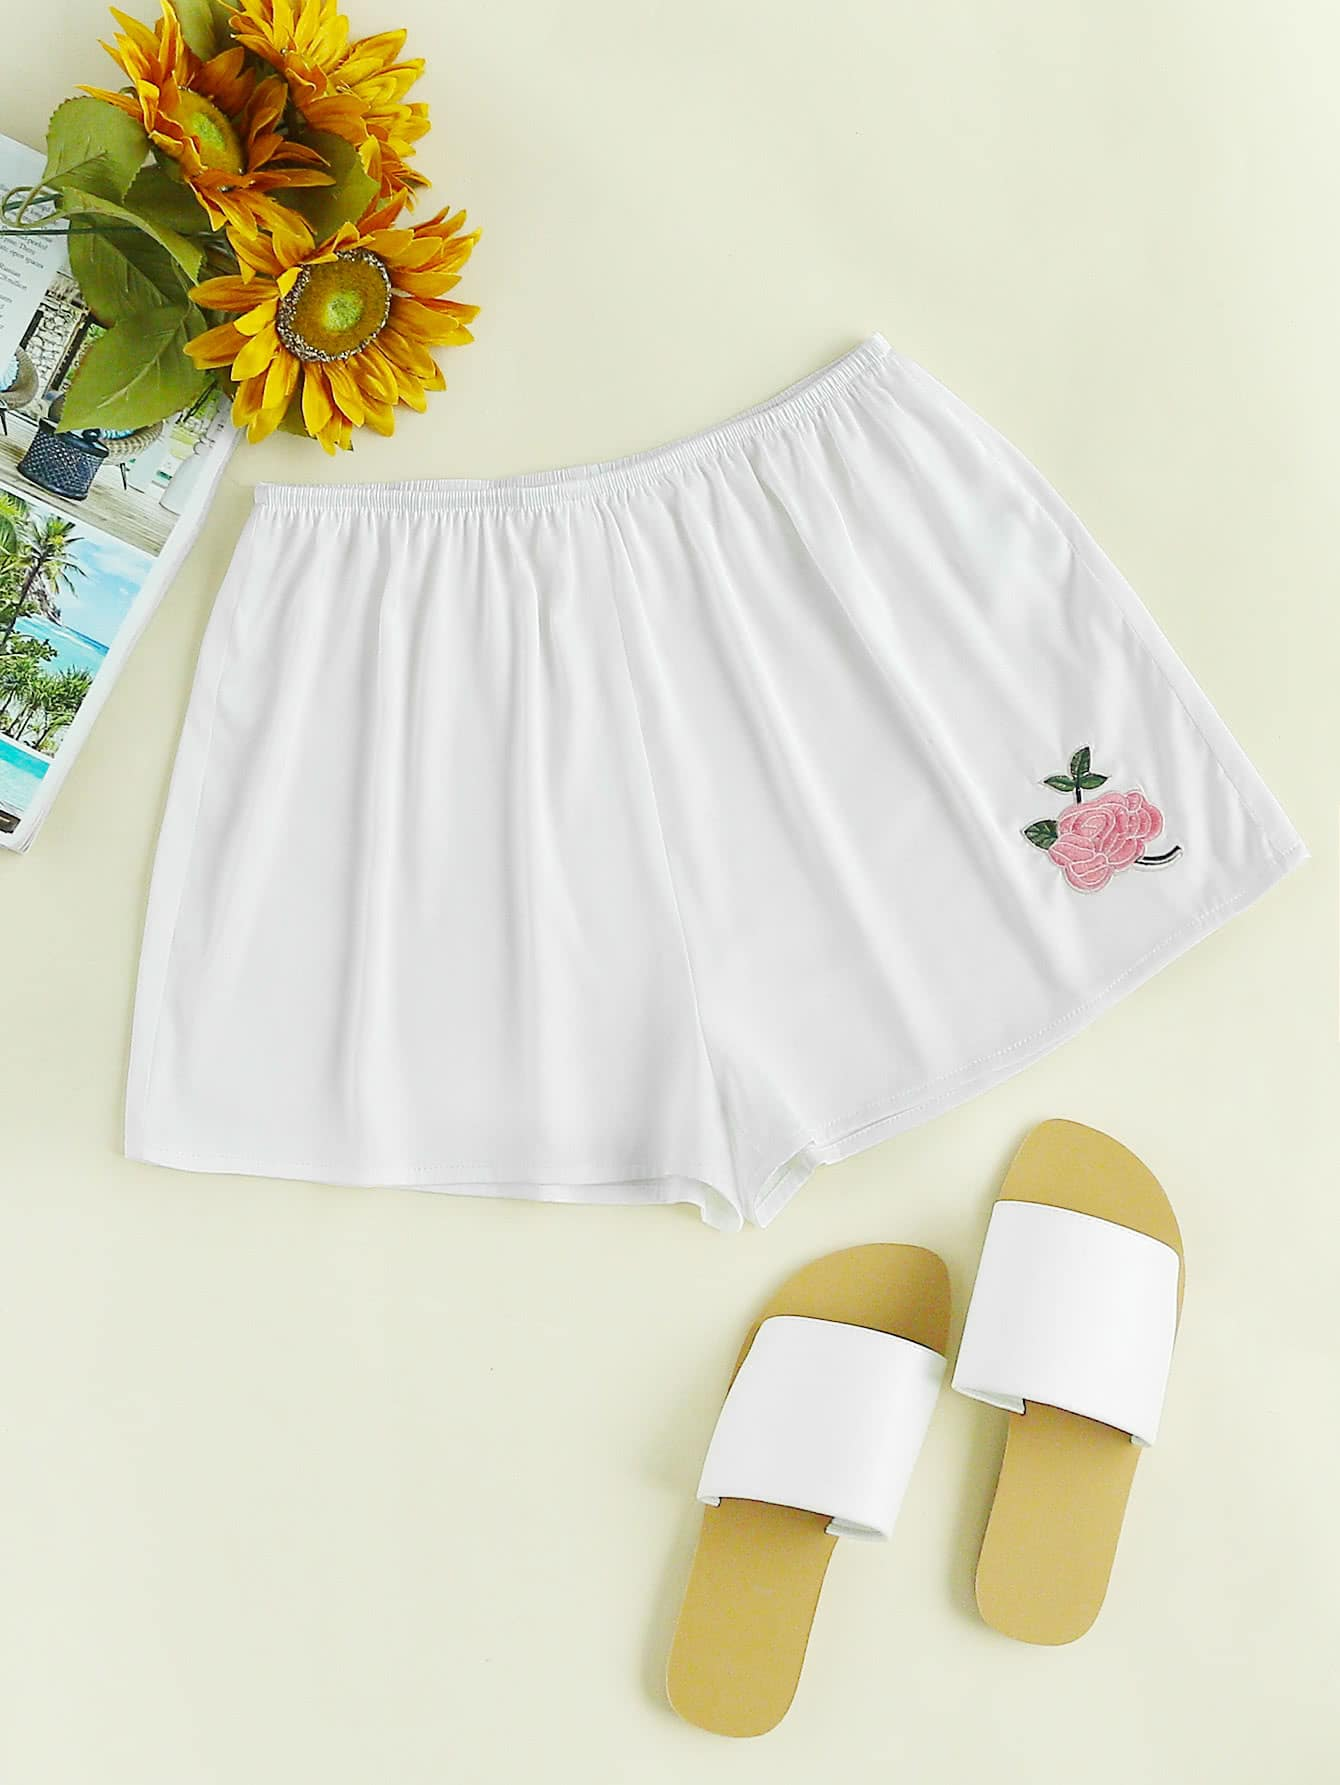 Rose Embroidered Legging Shorts Apparel and Accessories Products